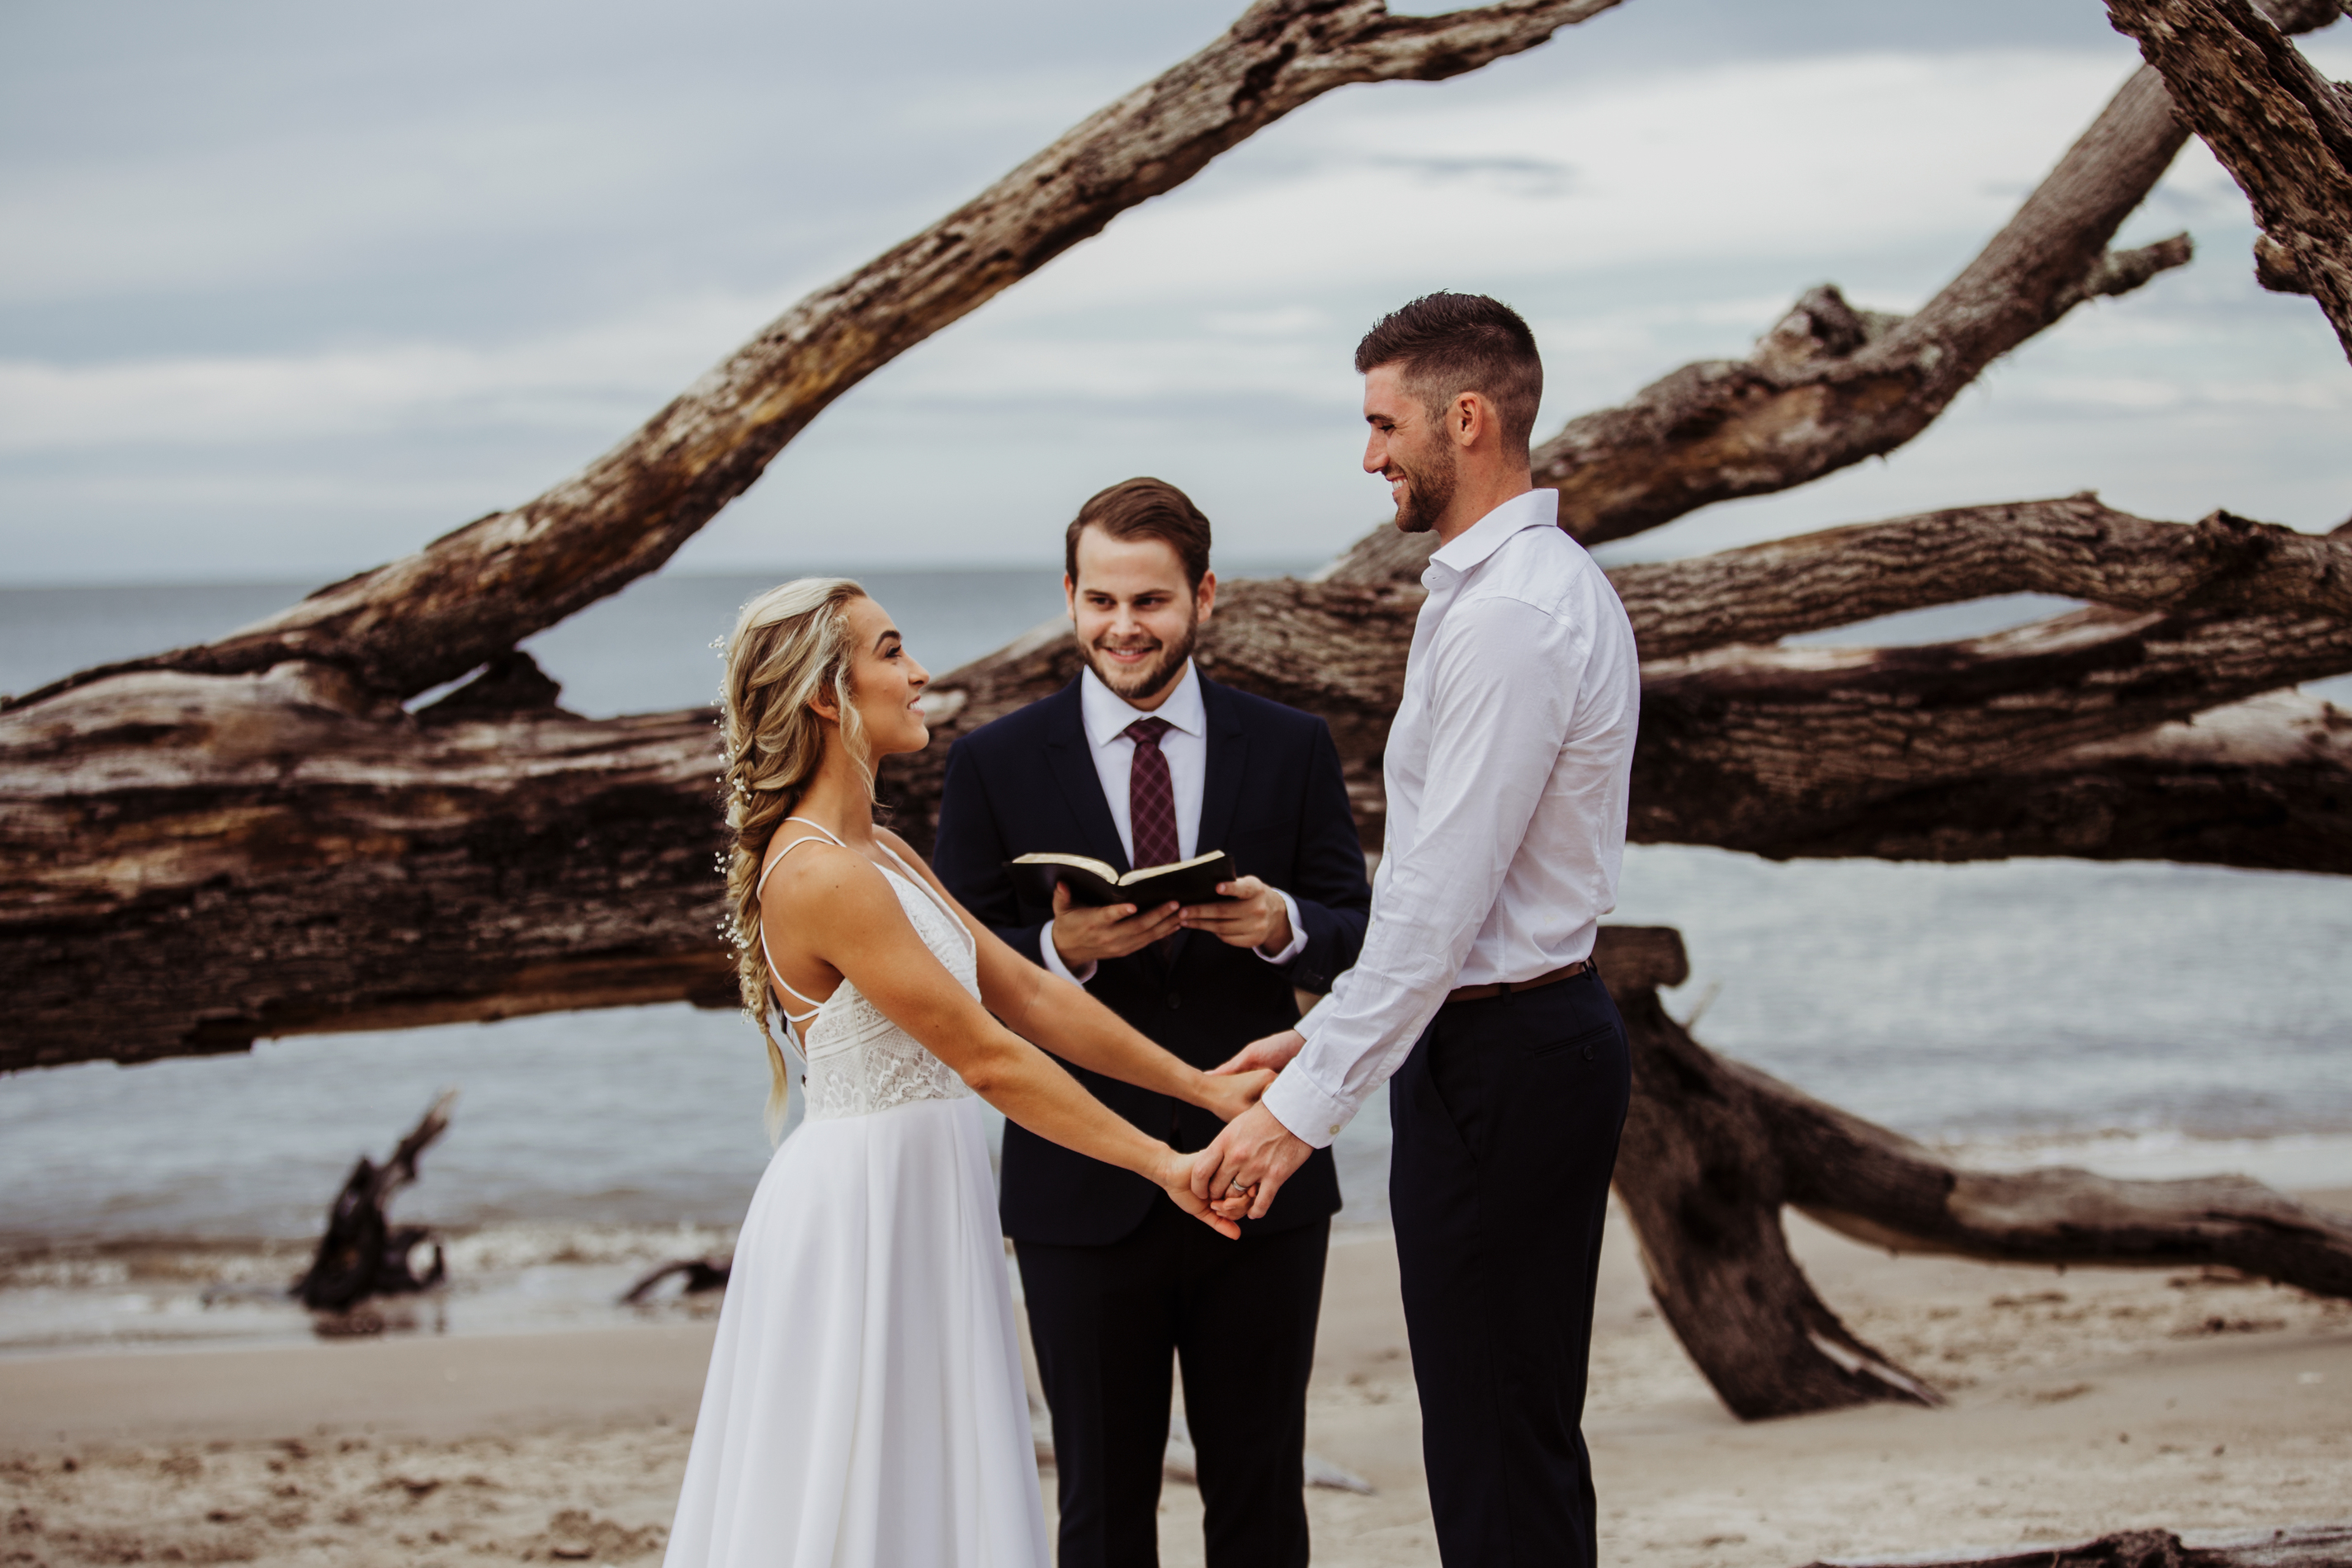 Wedding Photography & Engagement Photography, couple getting married on the beach